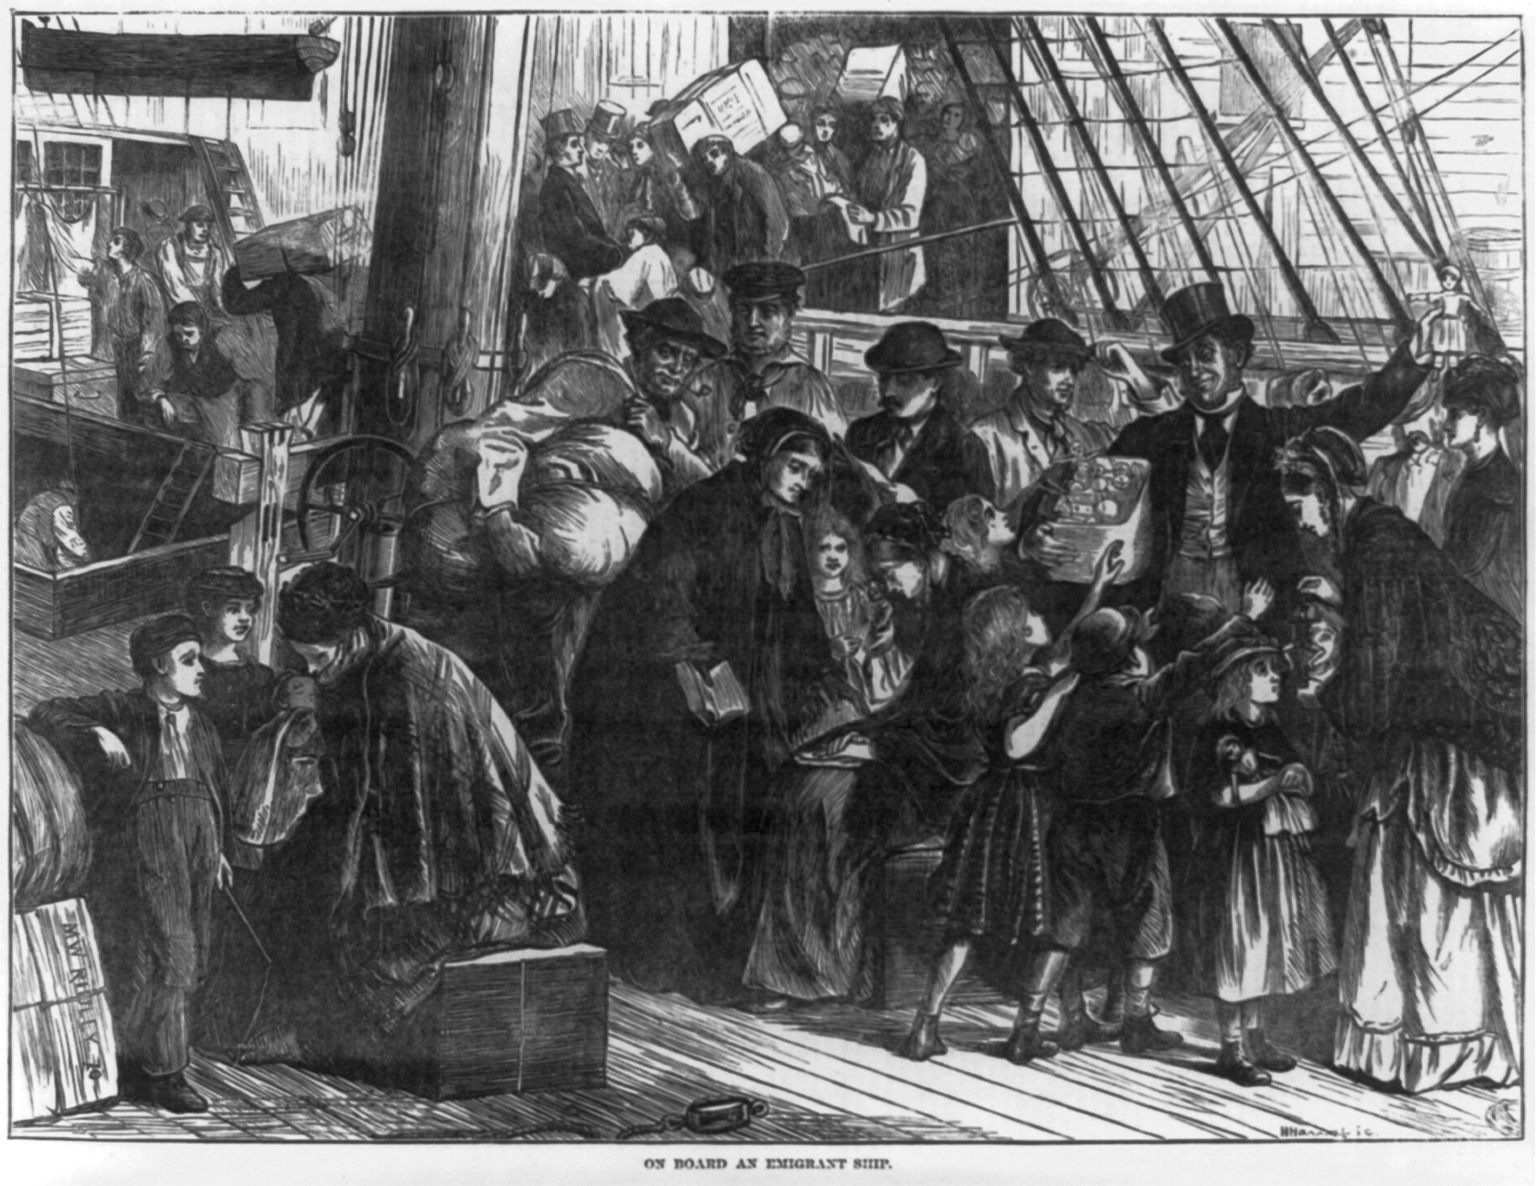 On Board an Emigrant Ship (Library of Congress)